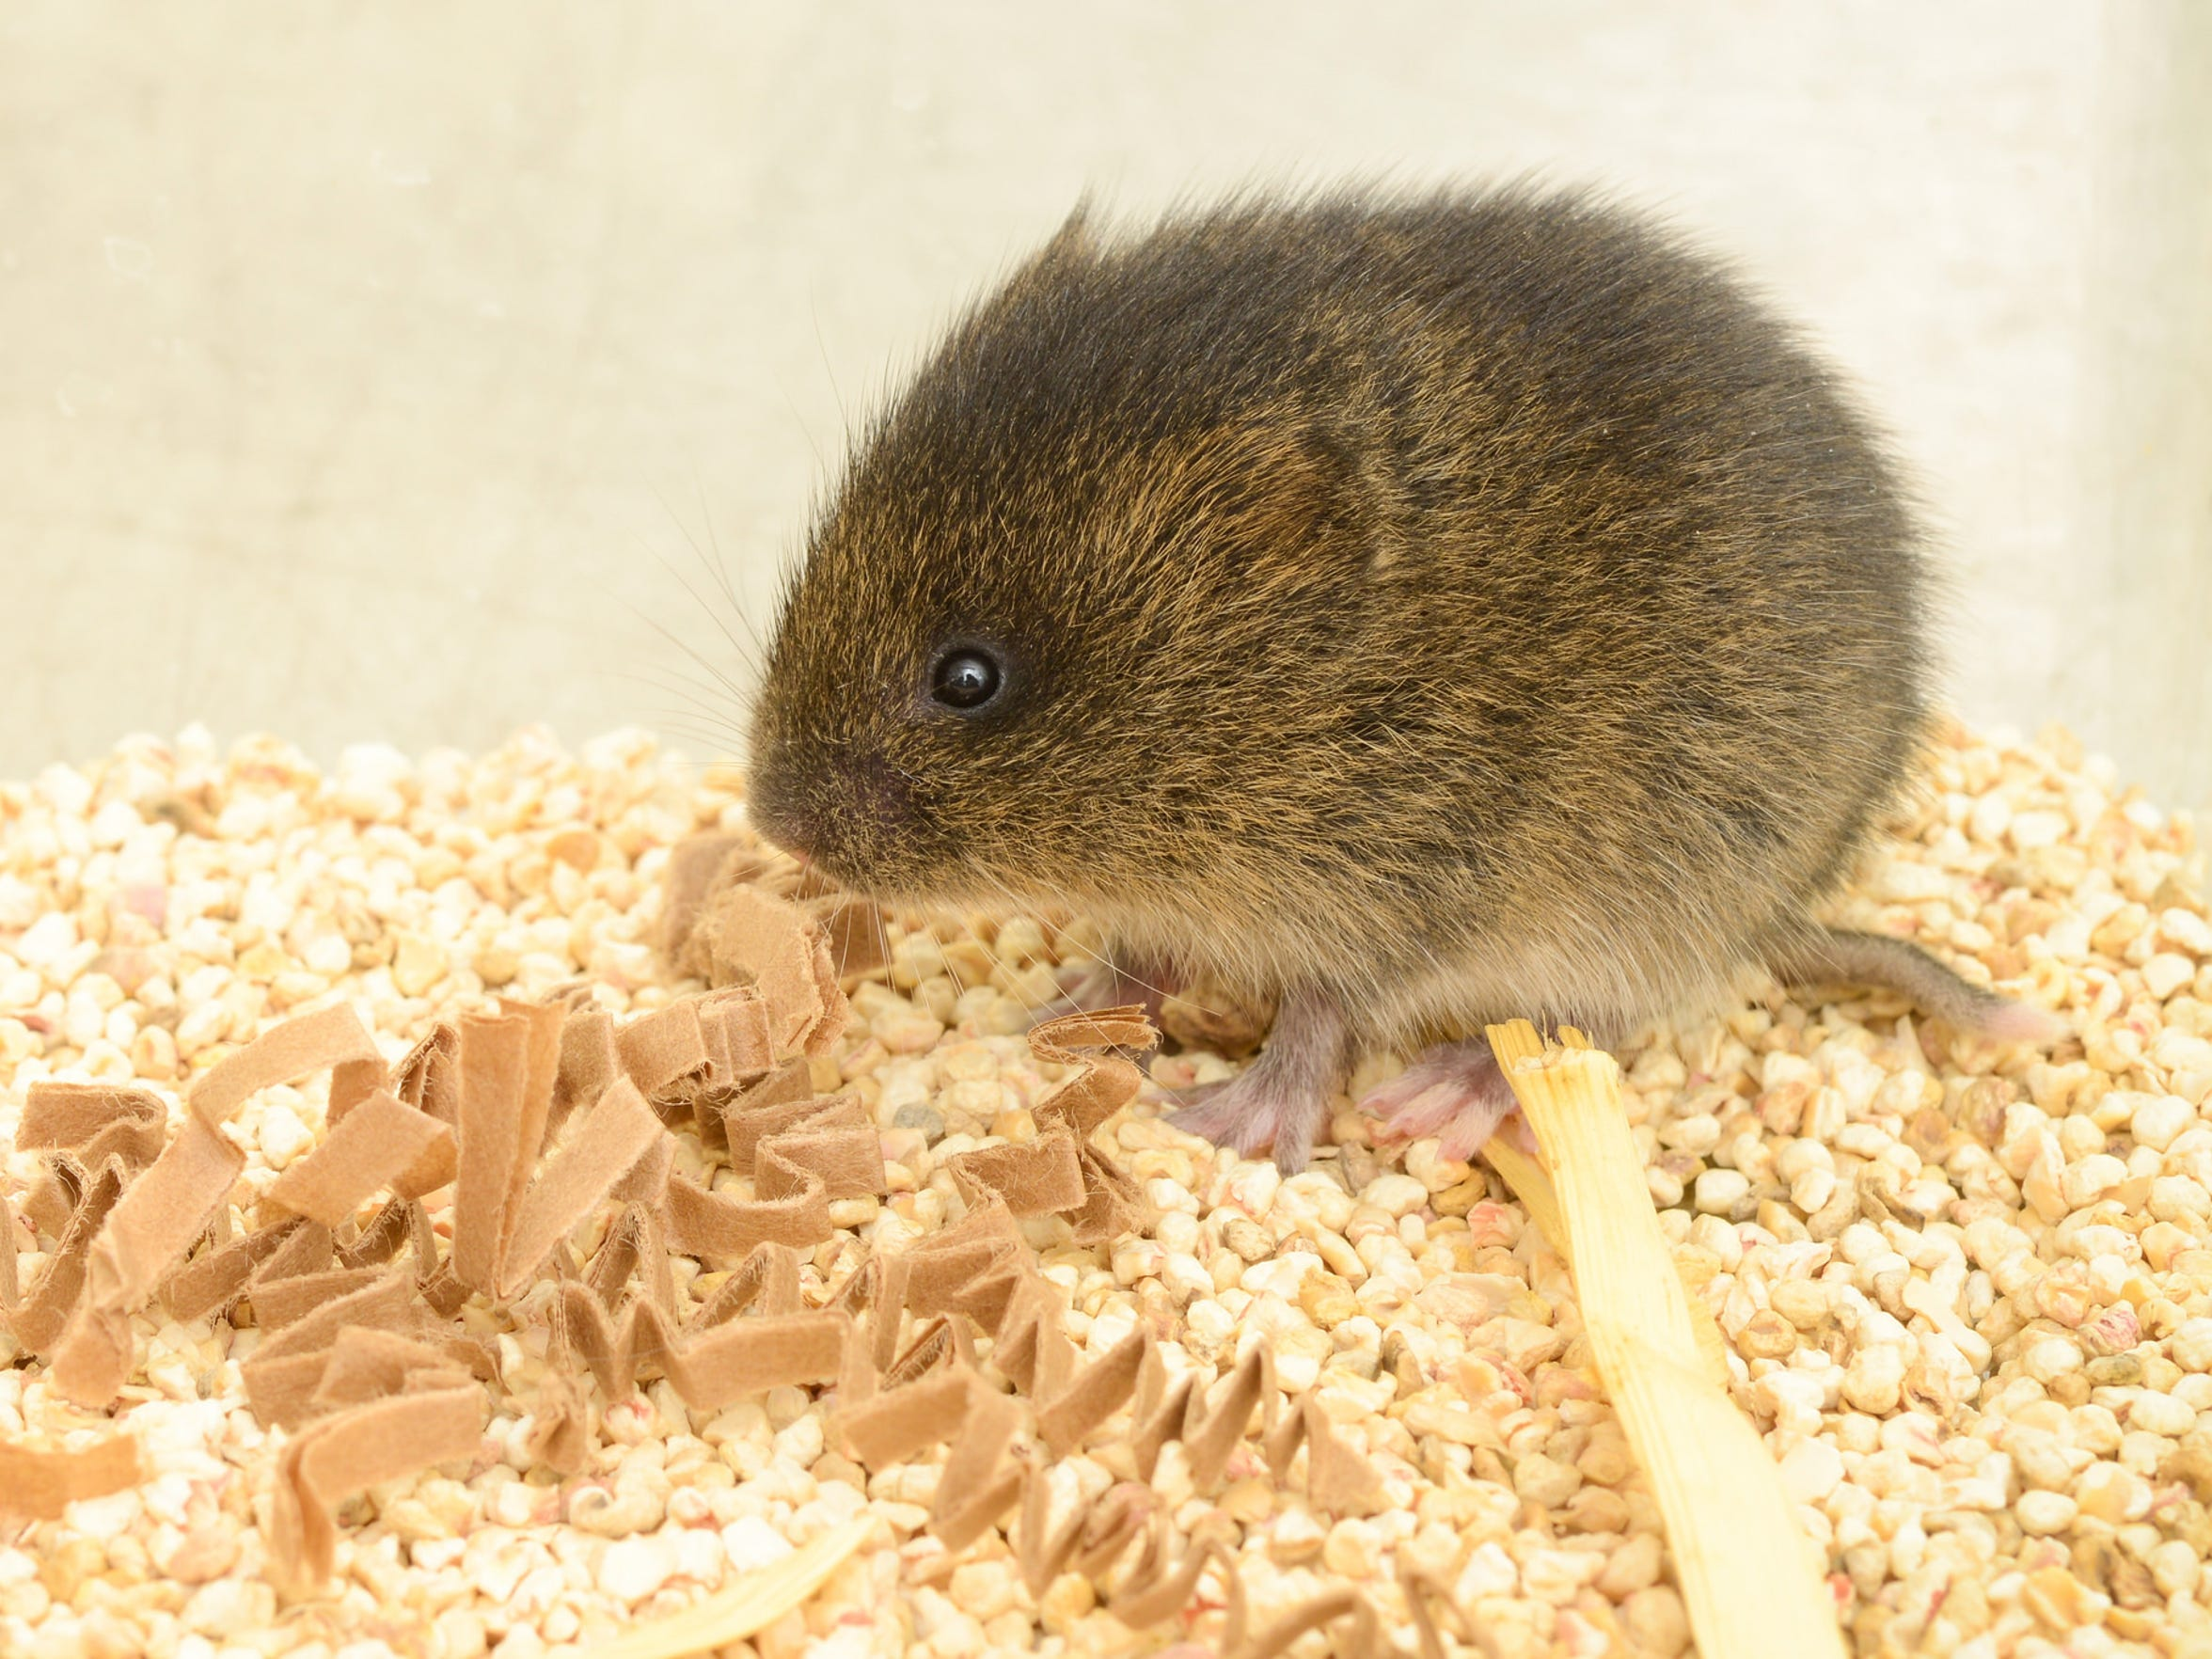 An Amargosa vole in captivity at the University of